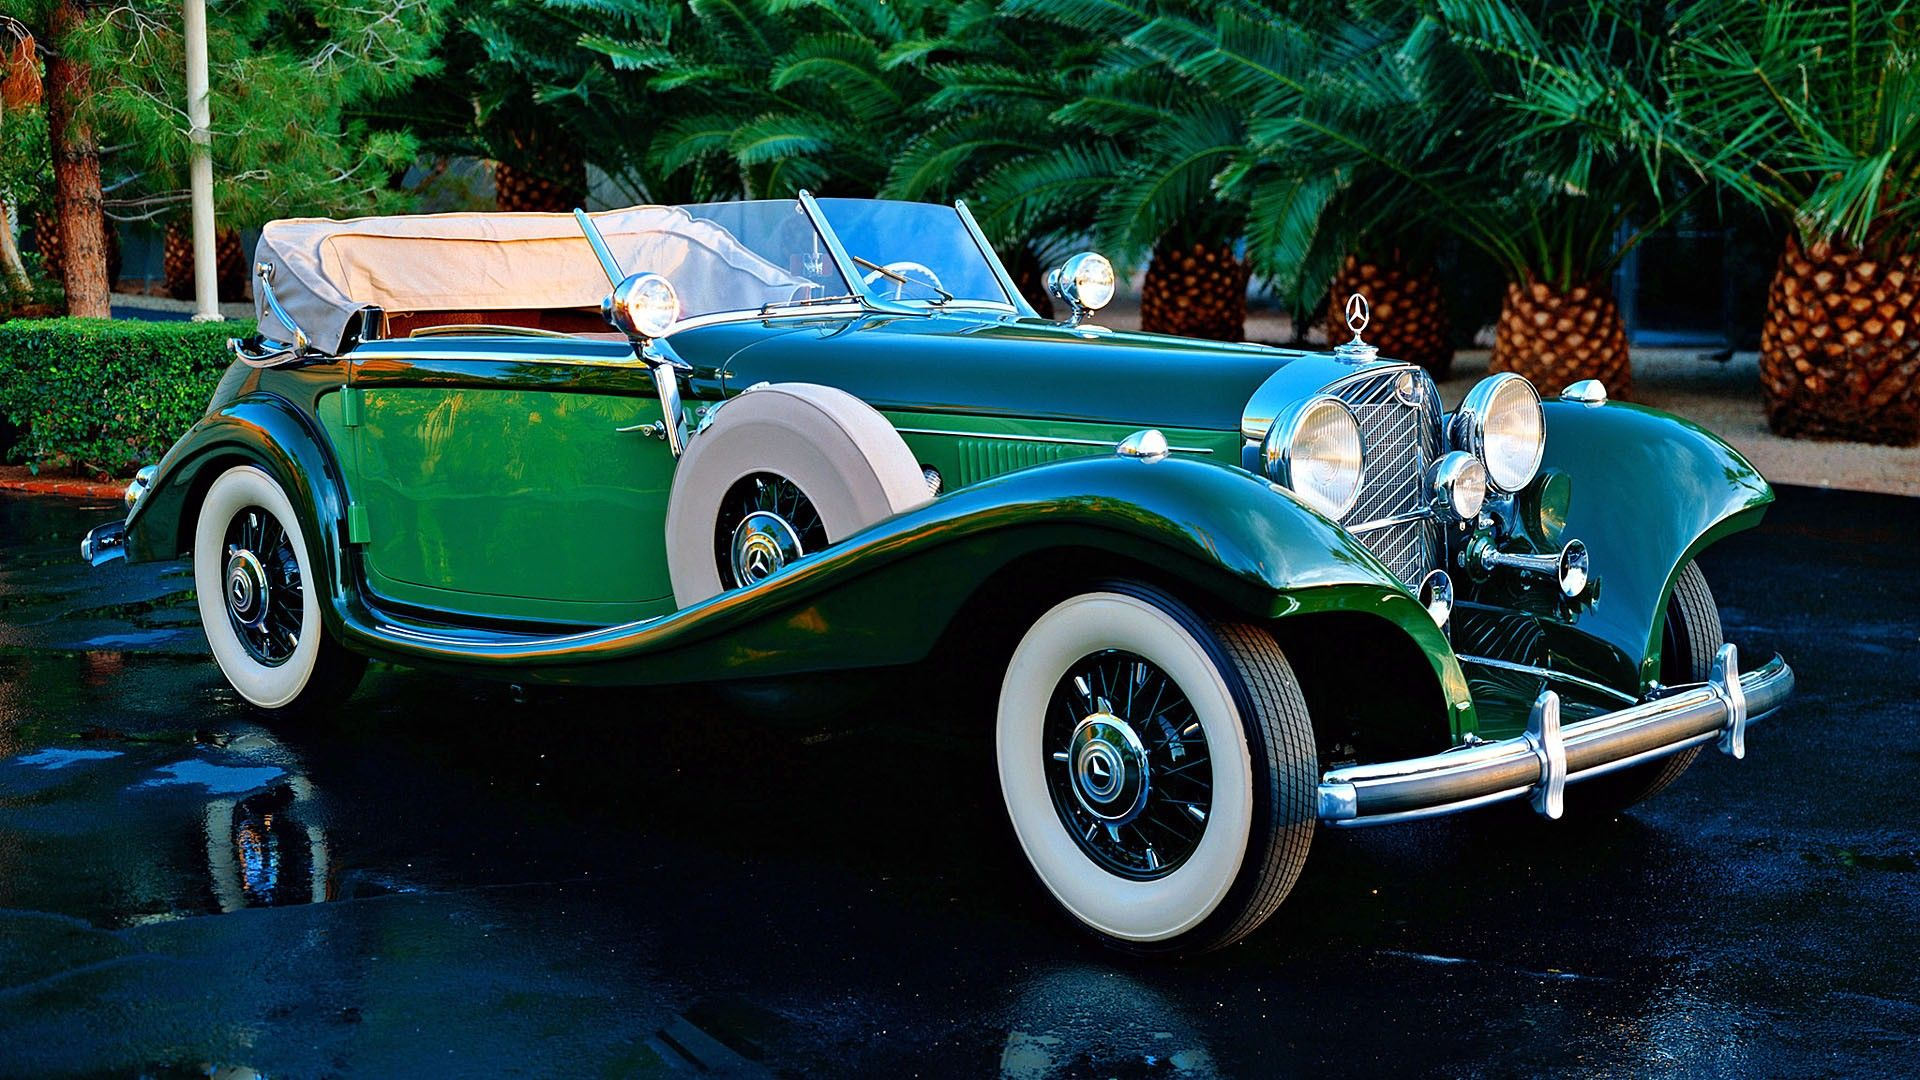 Vintage cars on pinterest vintage cars antique cars and for Mercedes benz retro